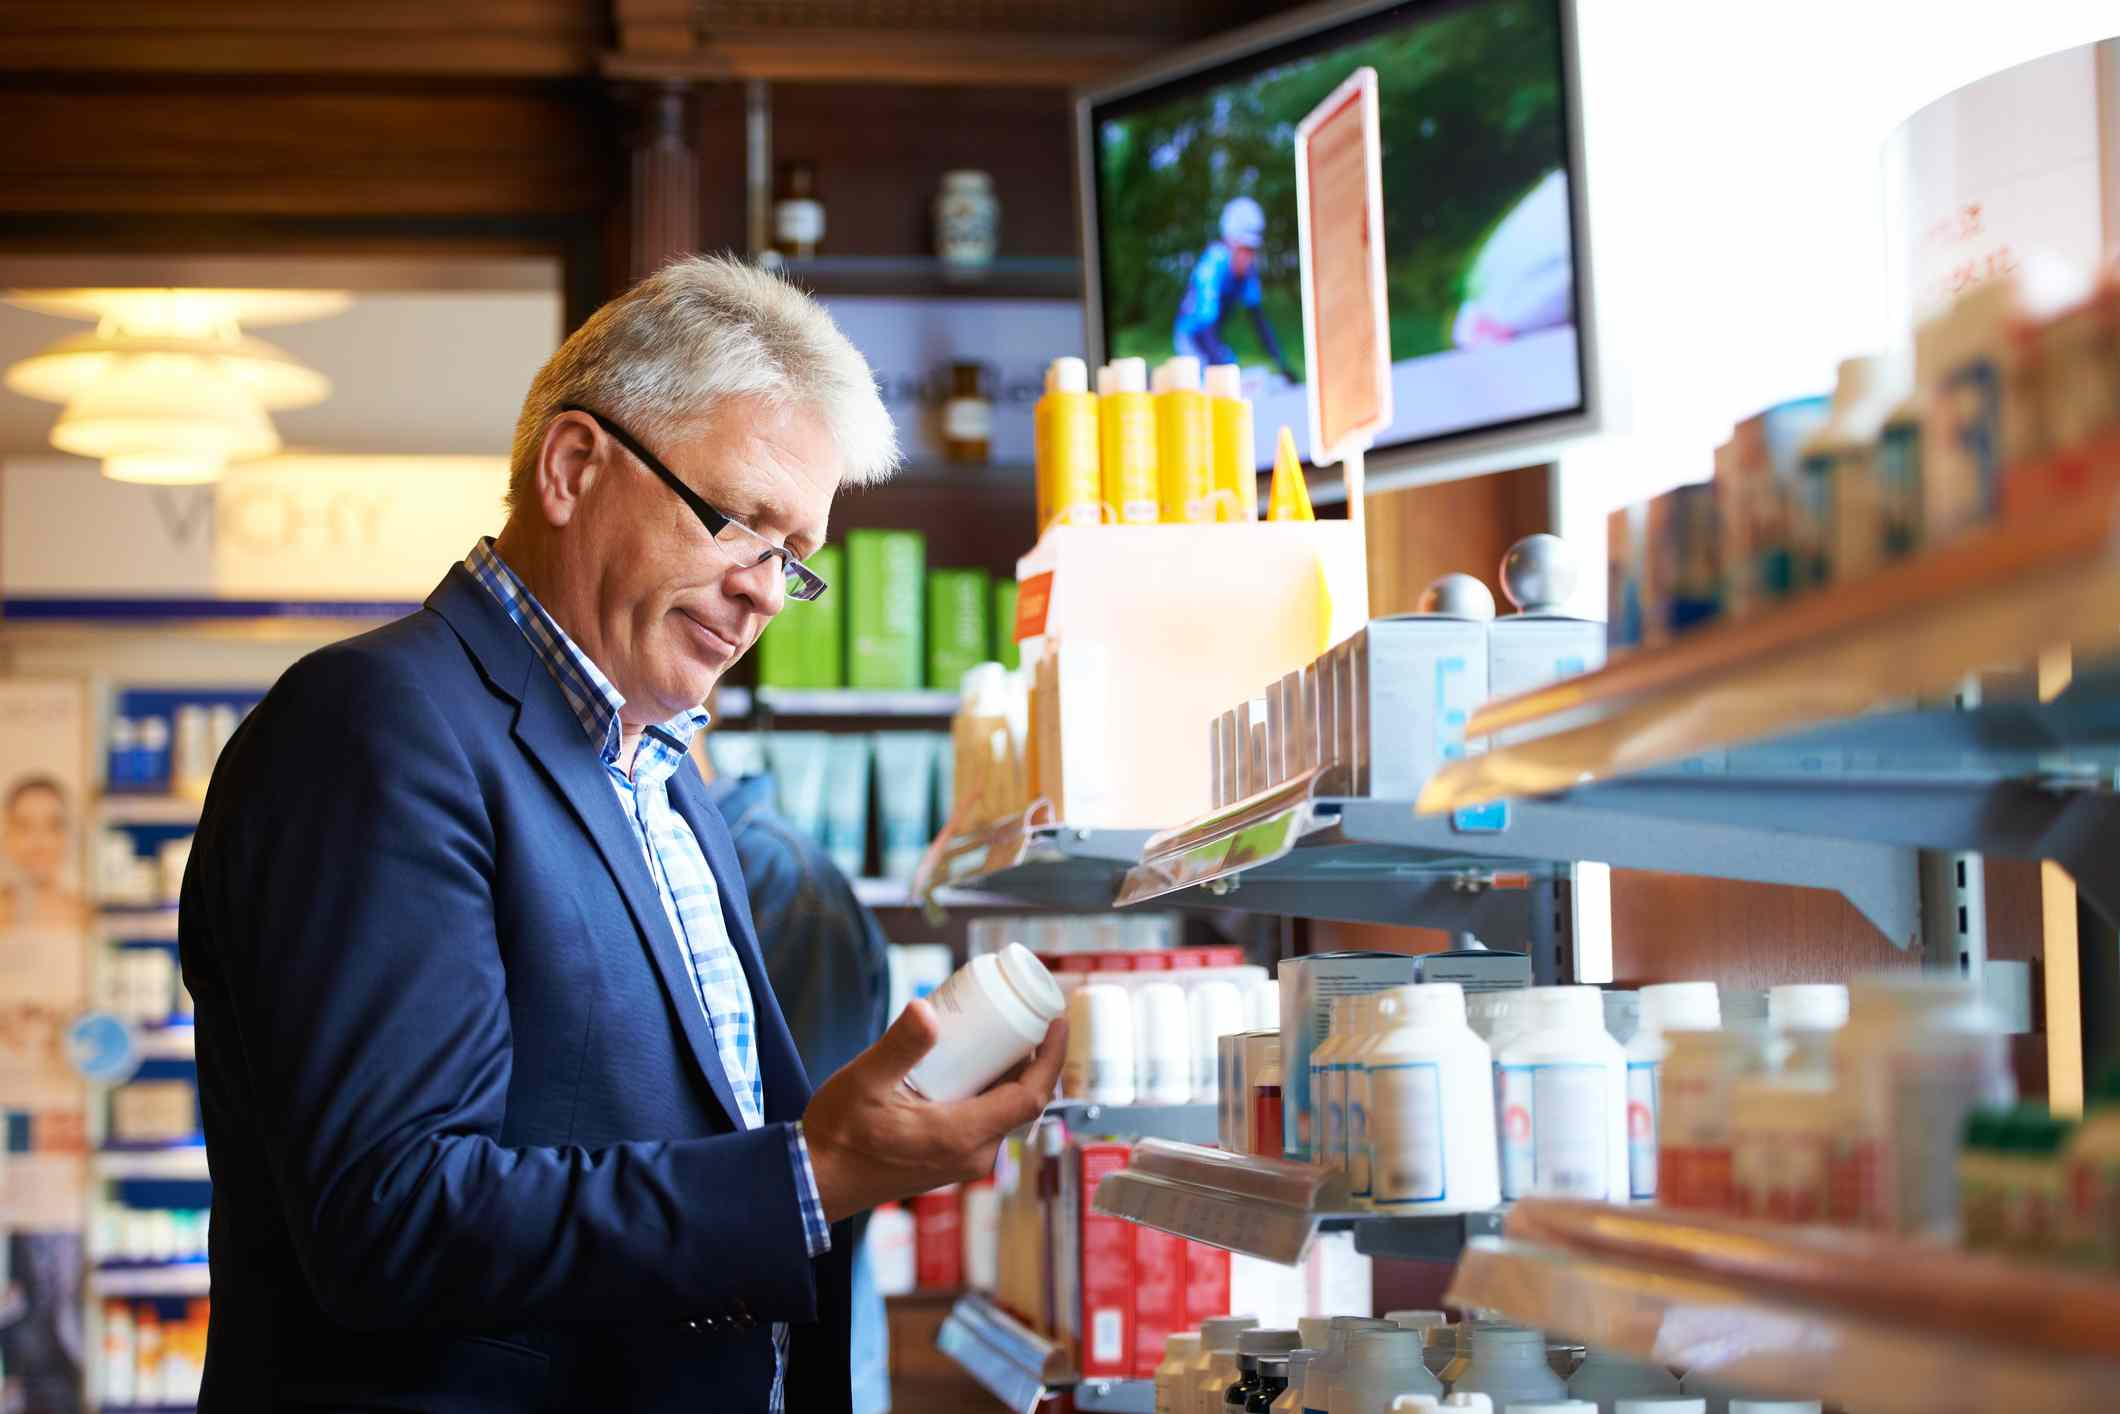 Man reading label on medicine in store